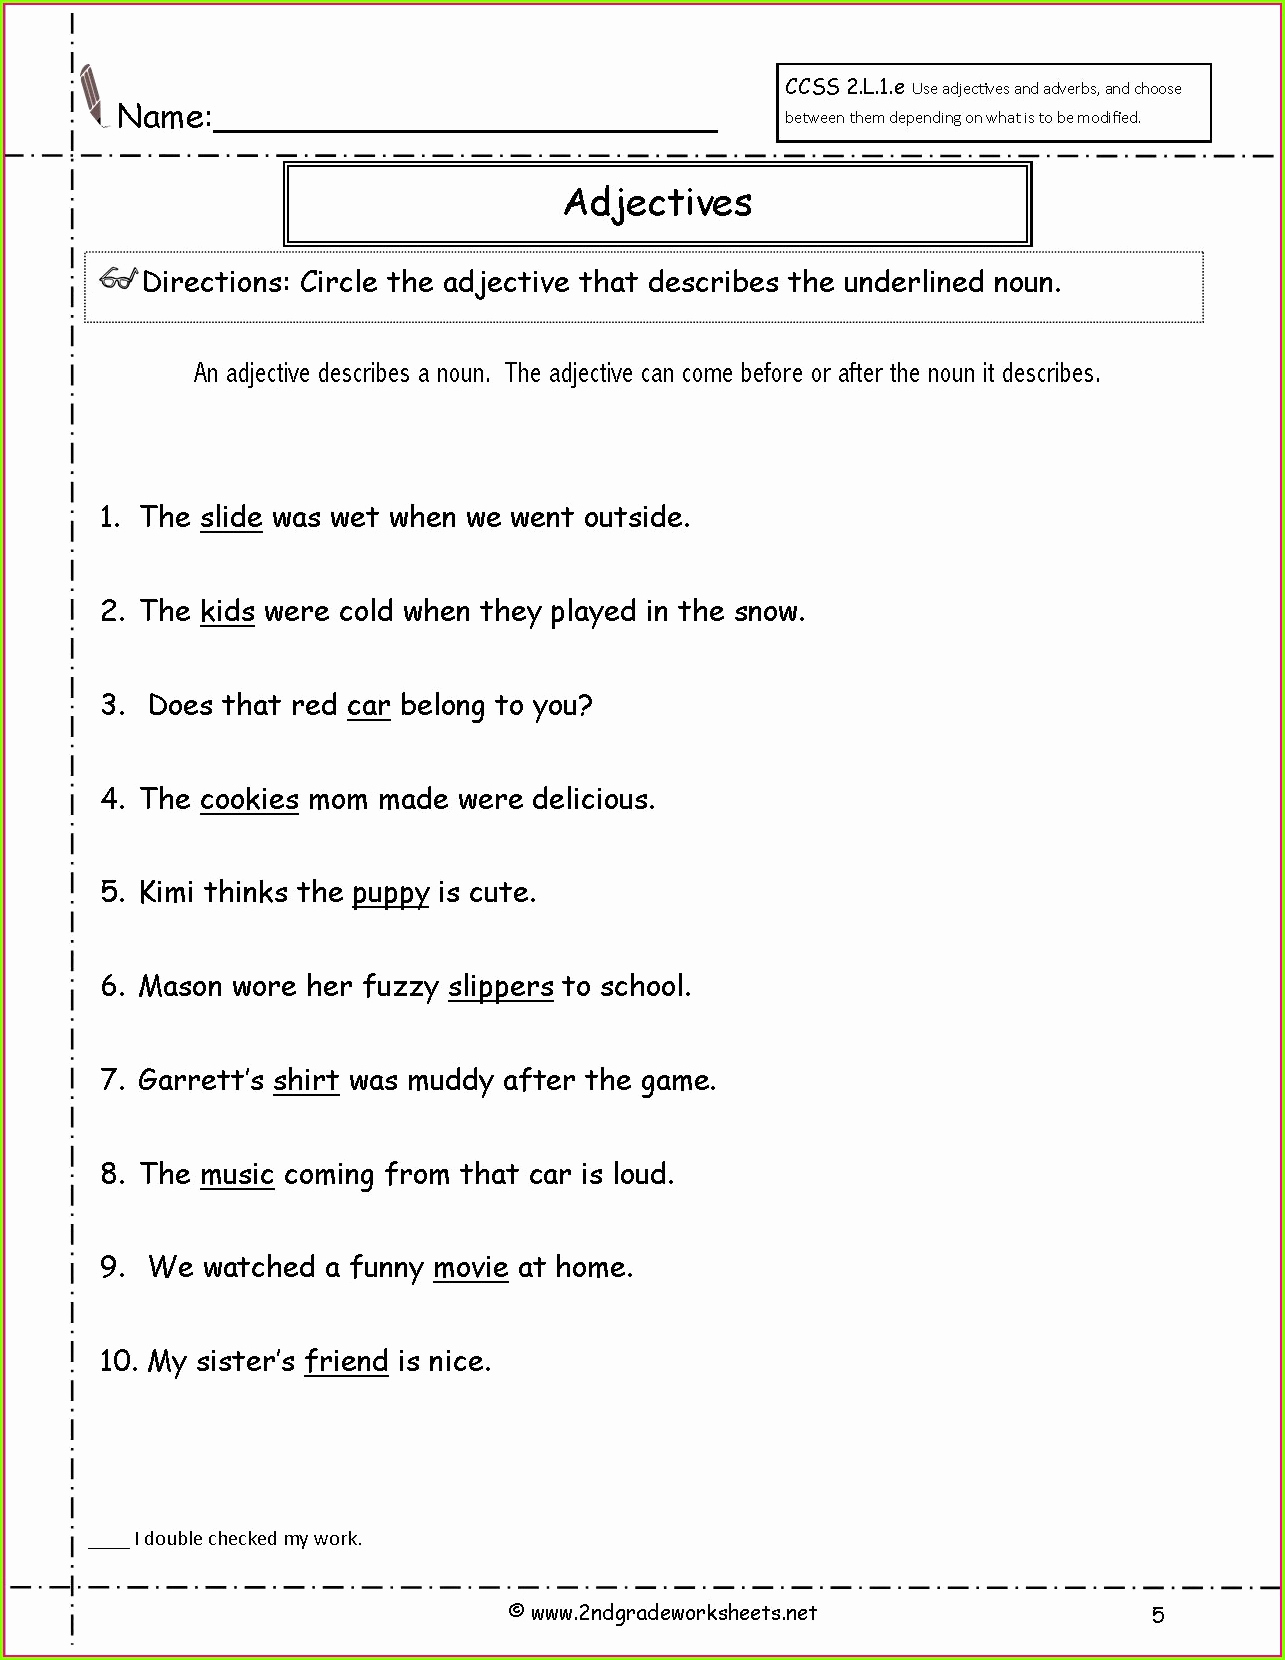 3rd Grade Adjectives Worksheets Luxury 3rd Grade Adjectives and Adverbs Worksheet Worksheet